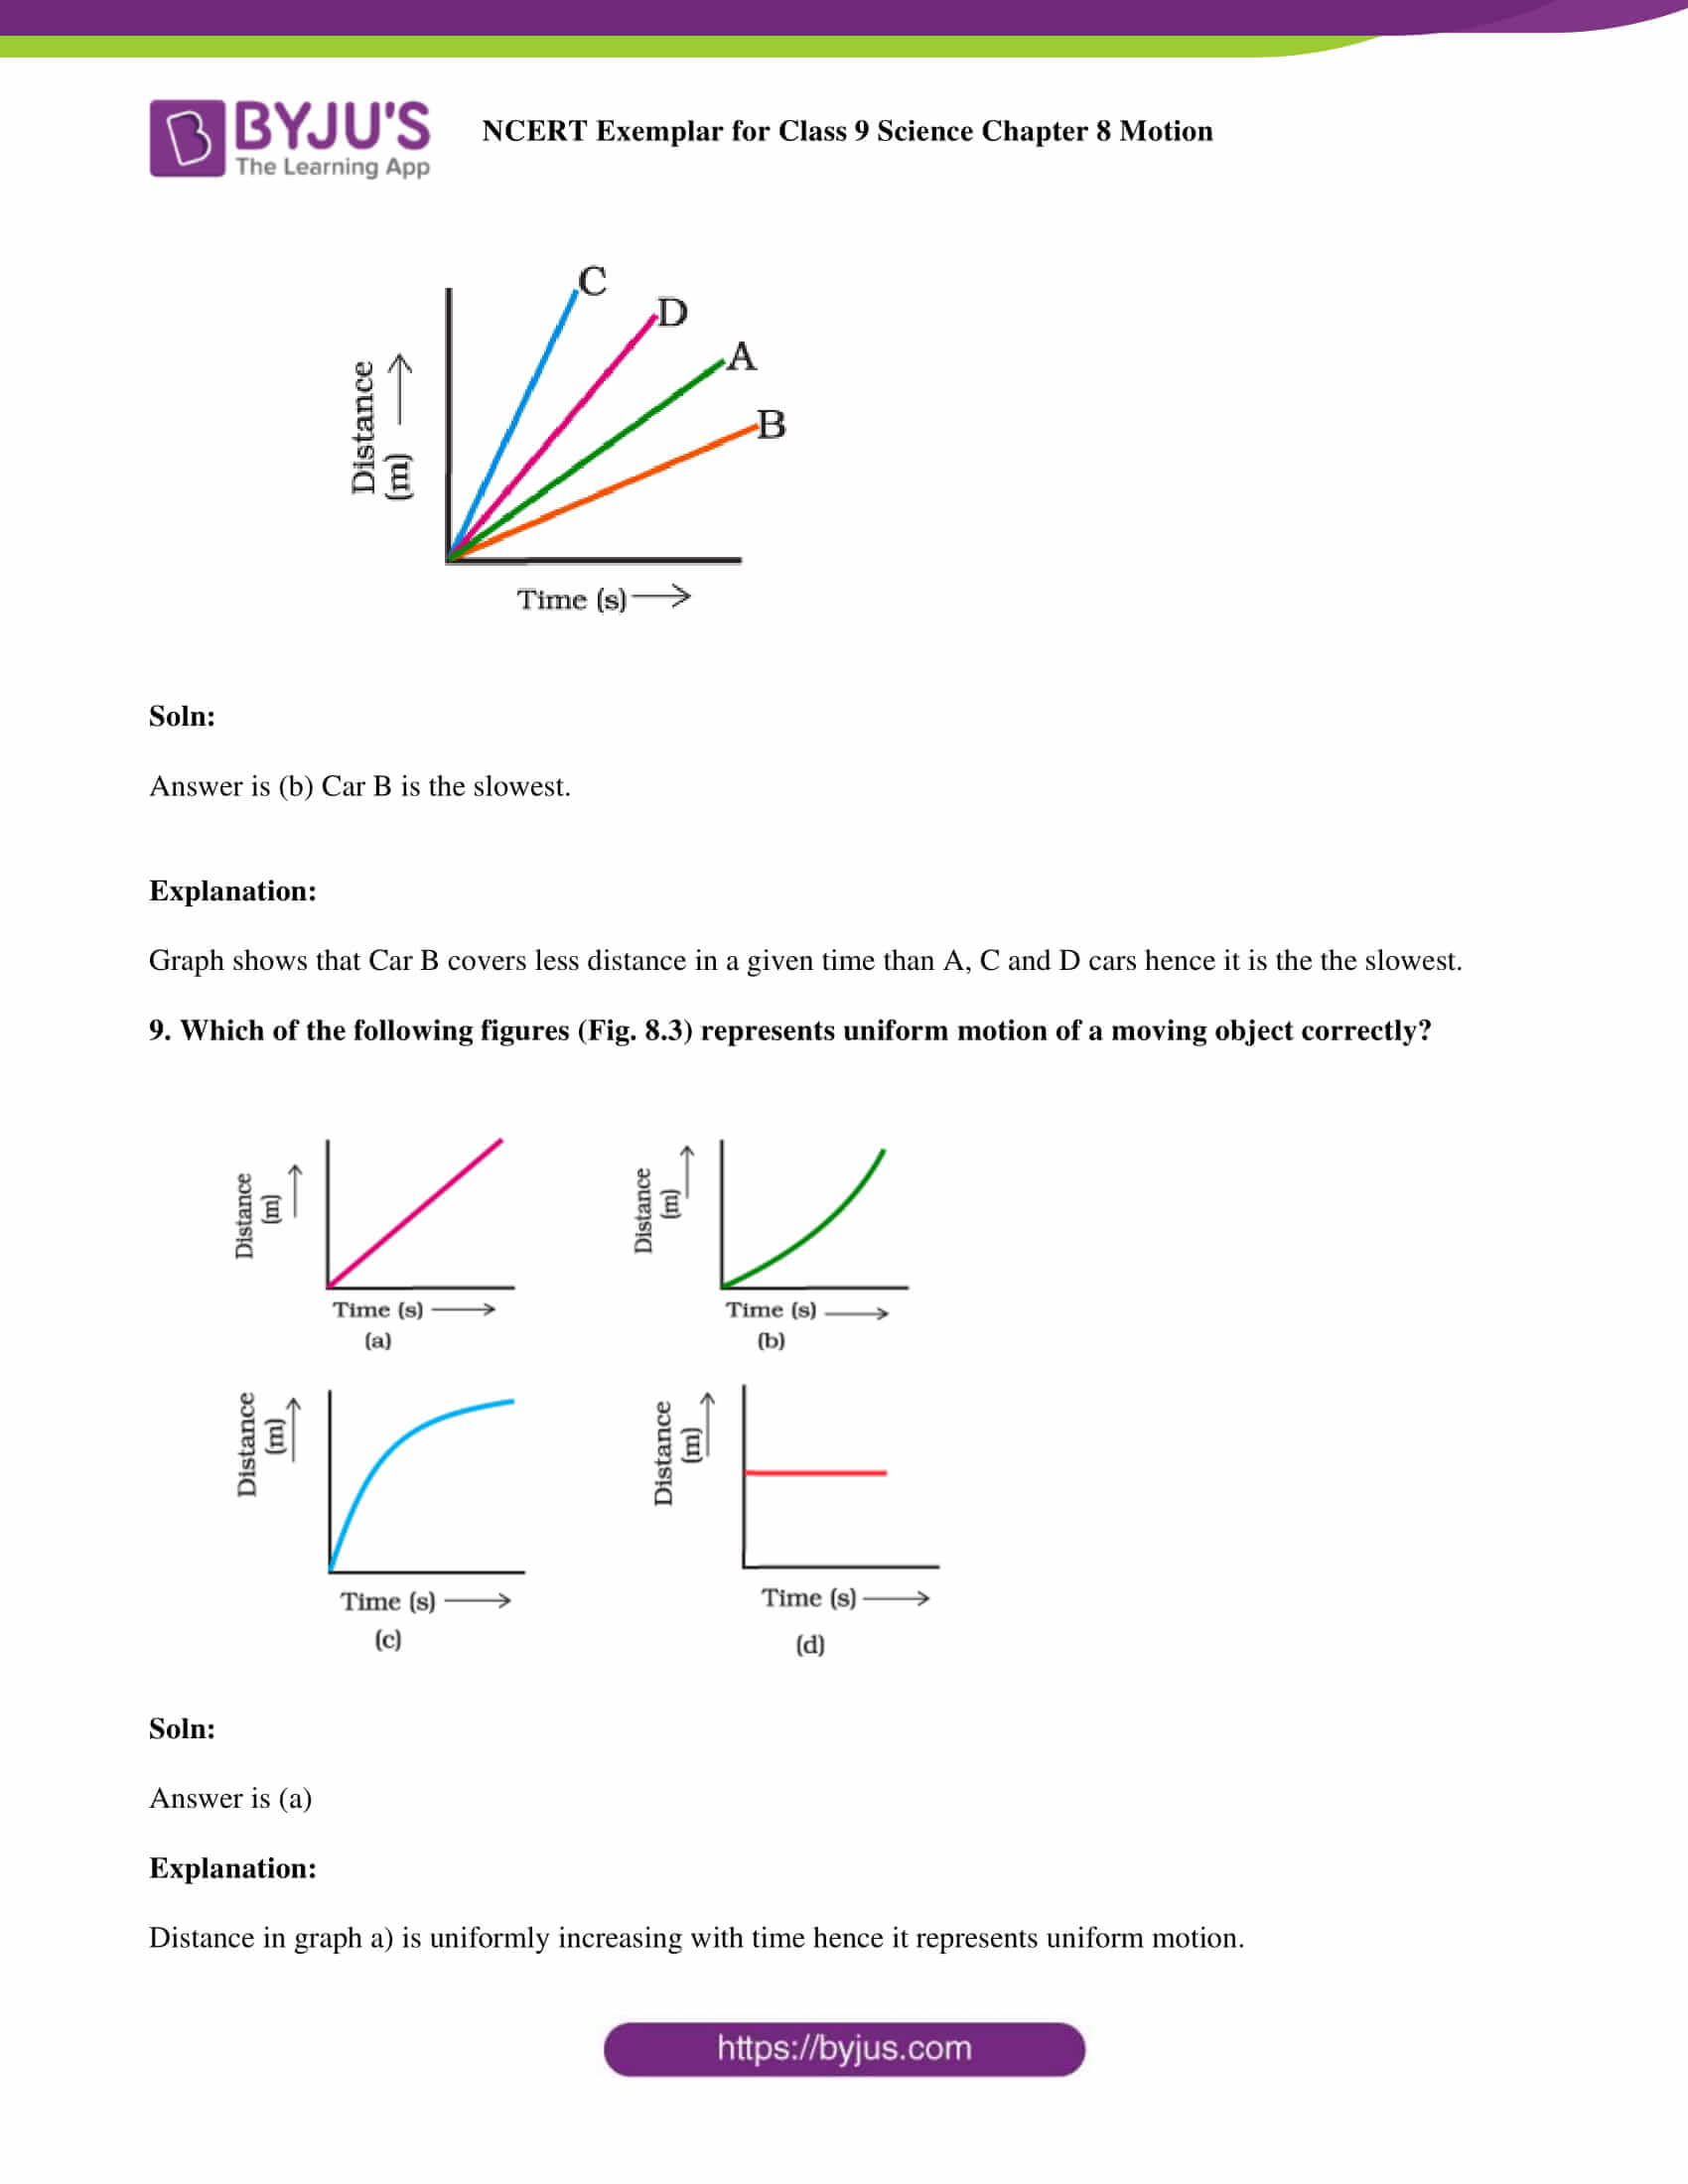 NCERT Exemplar solution class 9 scienceChapter 8 part 04